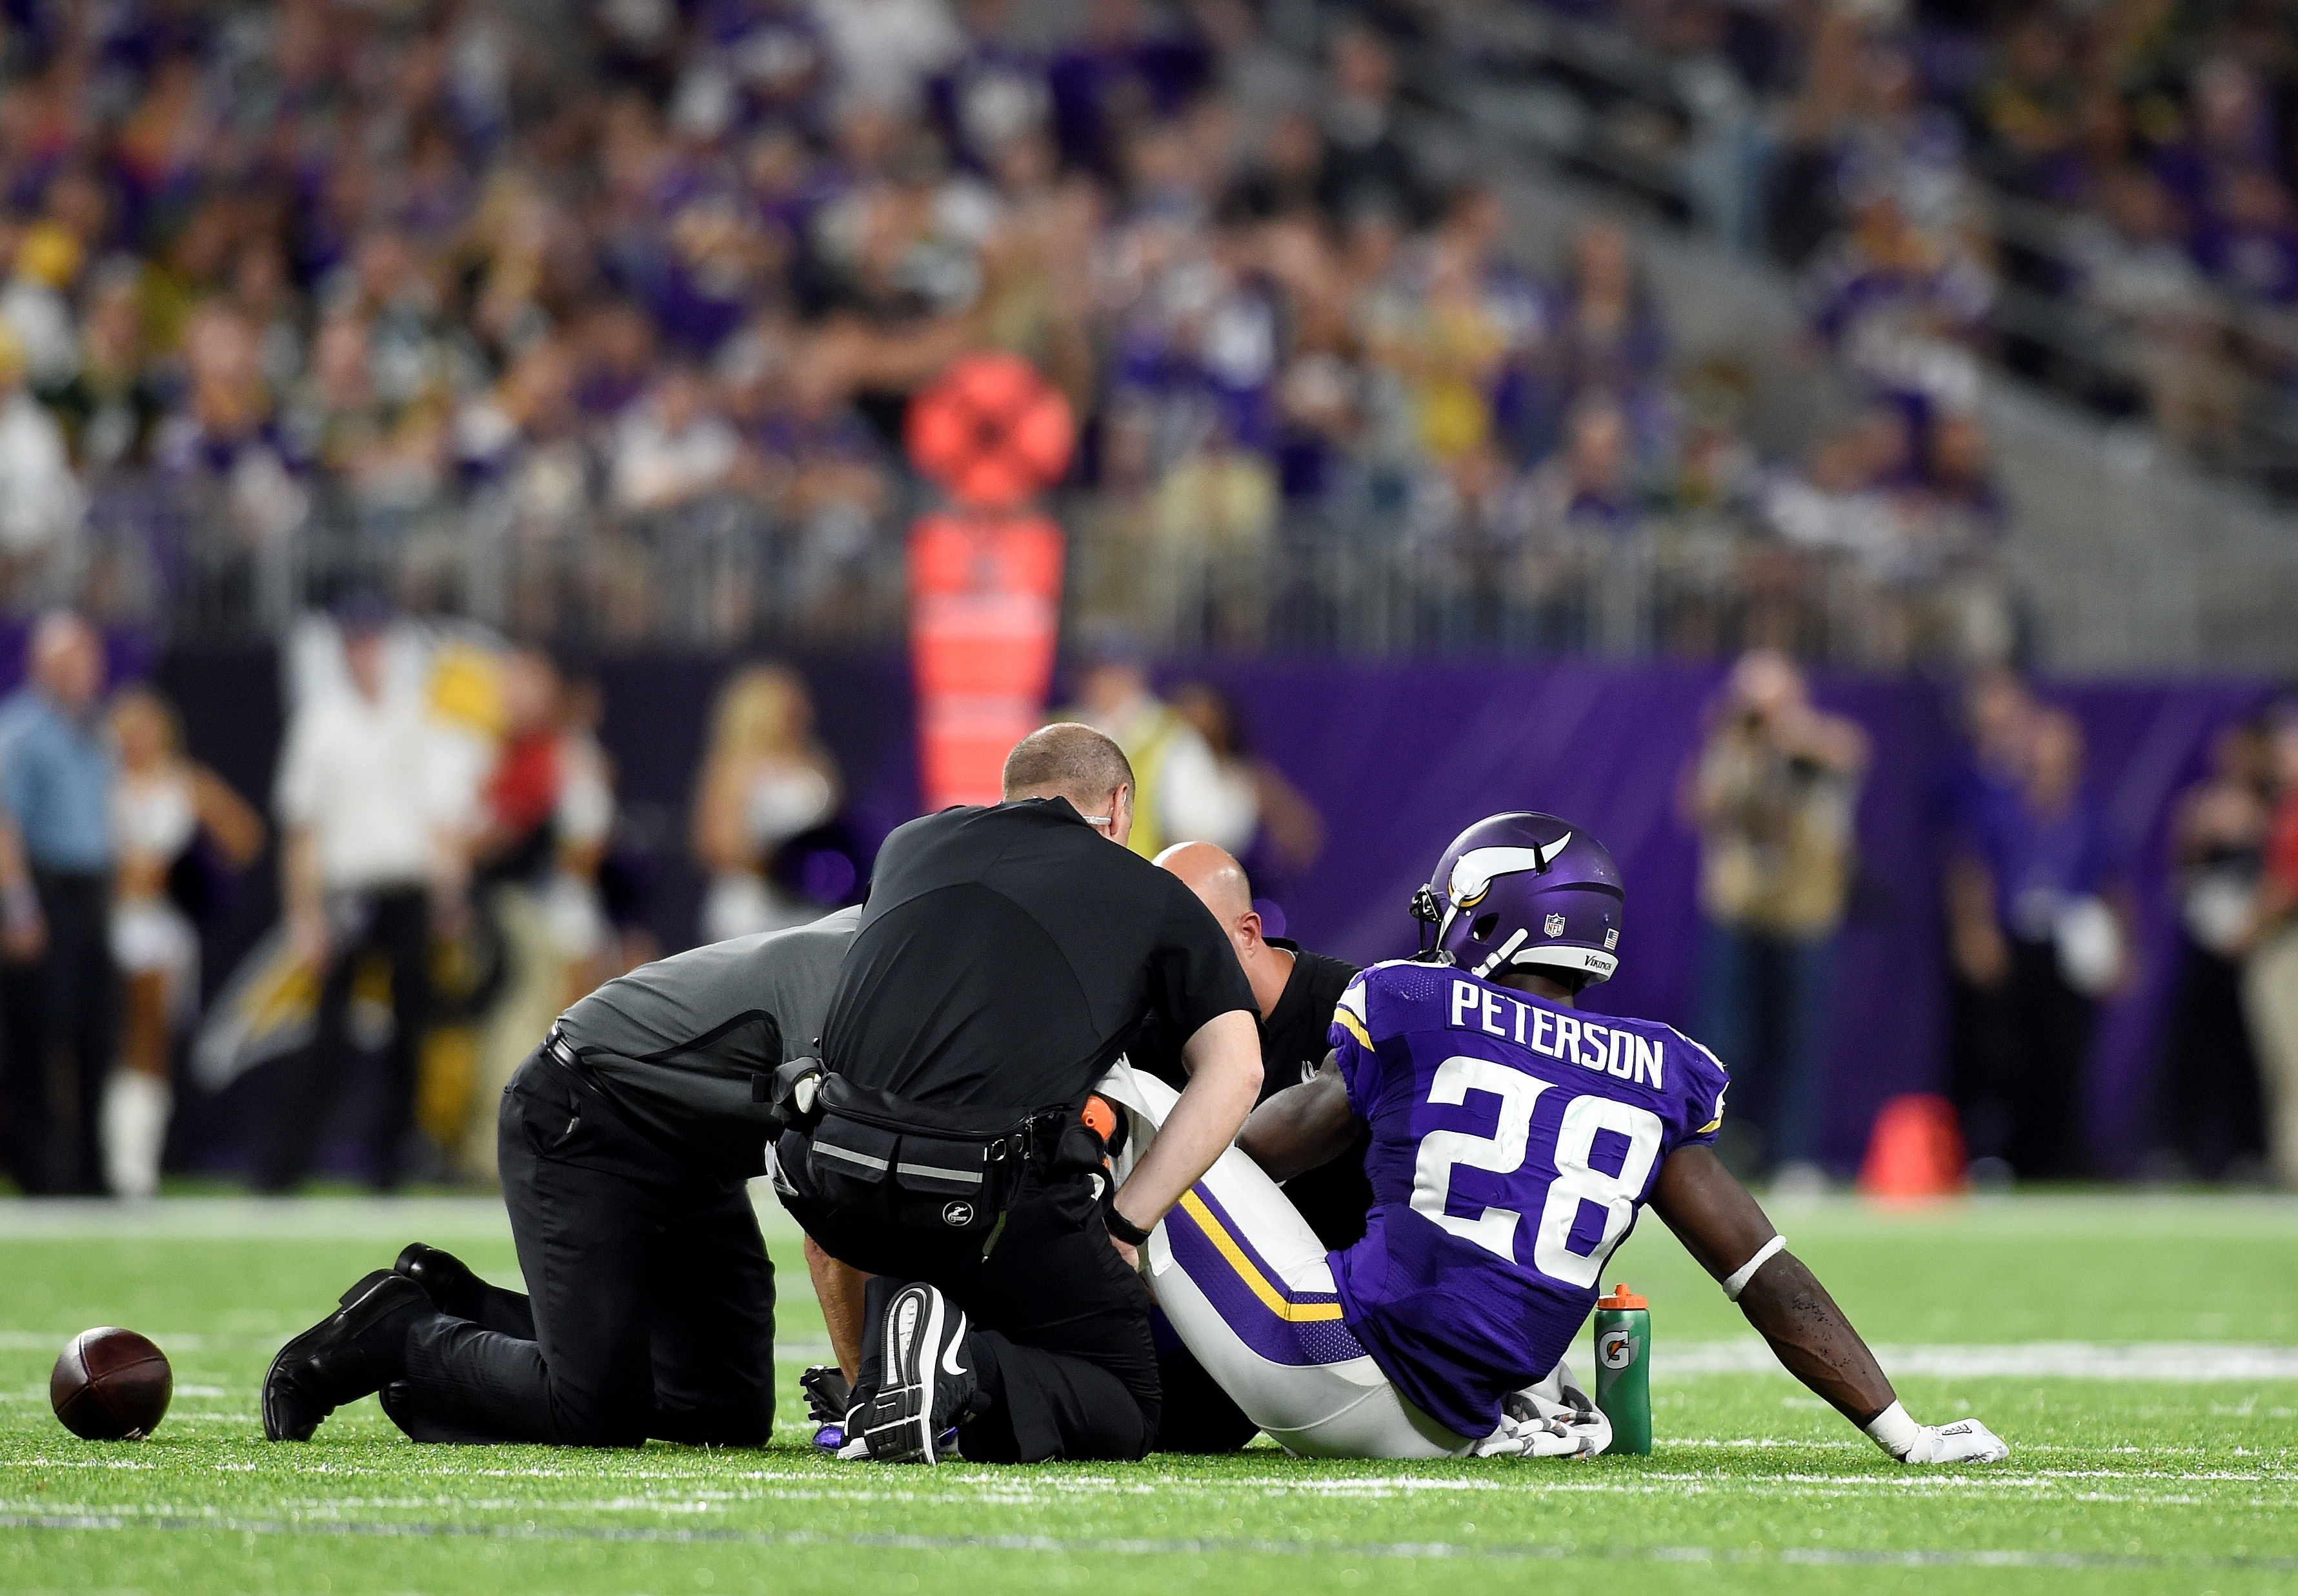 With Adrian Peterson, one of the few workhorse RBs in the league, lost for the season, fantasy players everywhere will be looking to the Minnesota backfield for value.